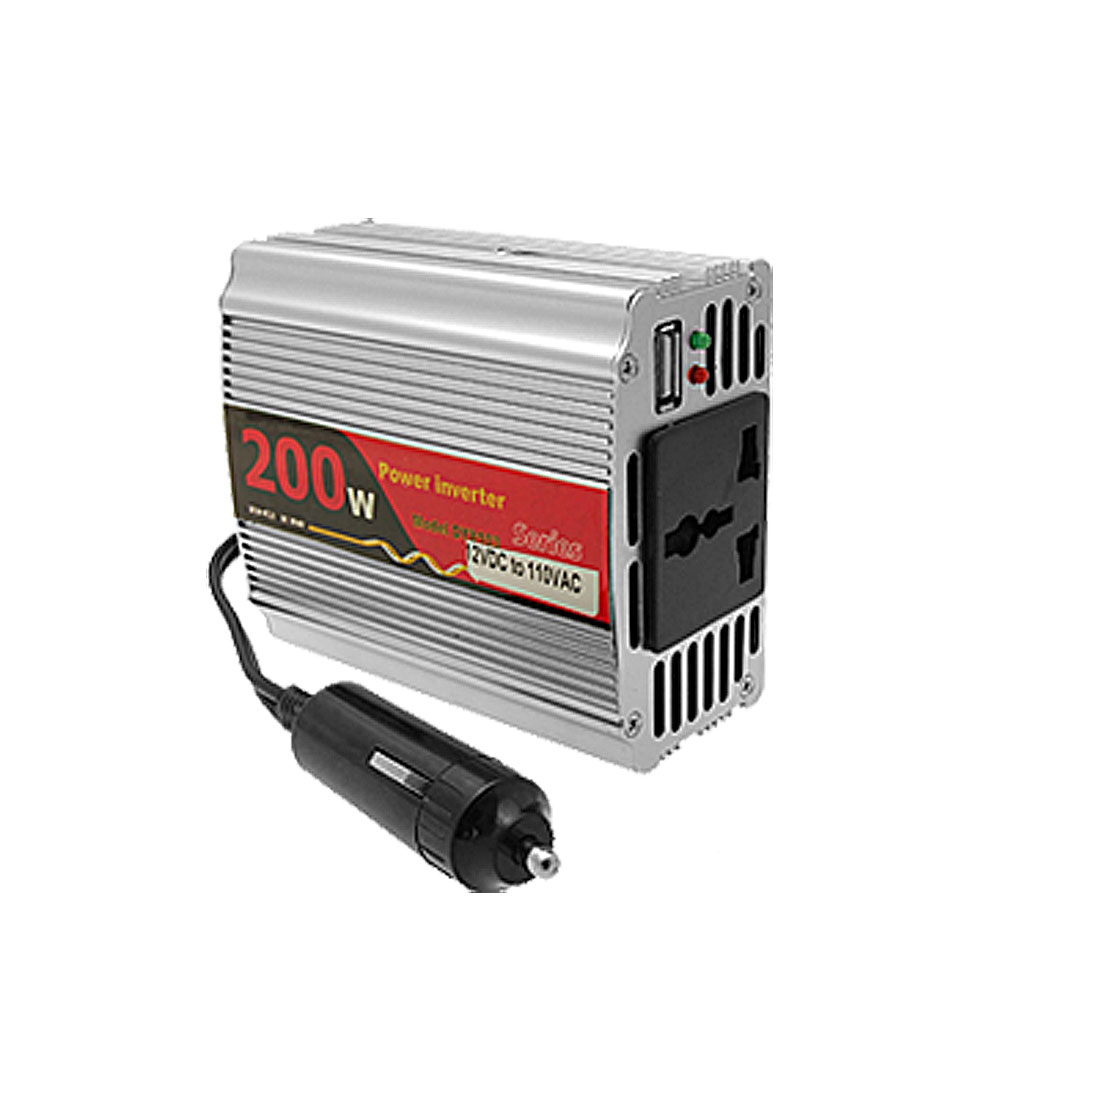 200W DC 12V to AC110V Car Power Inverter Adapter with USB Port